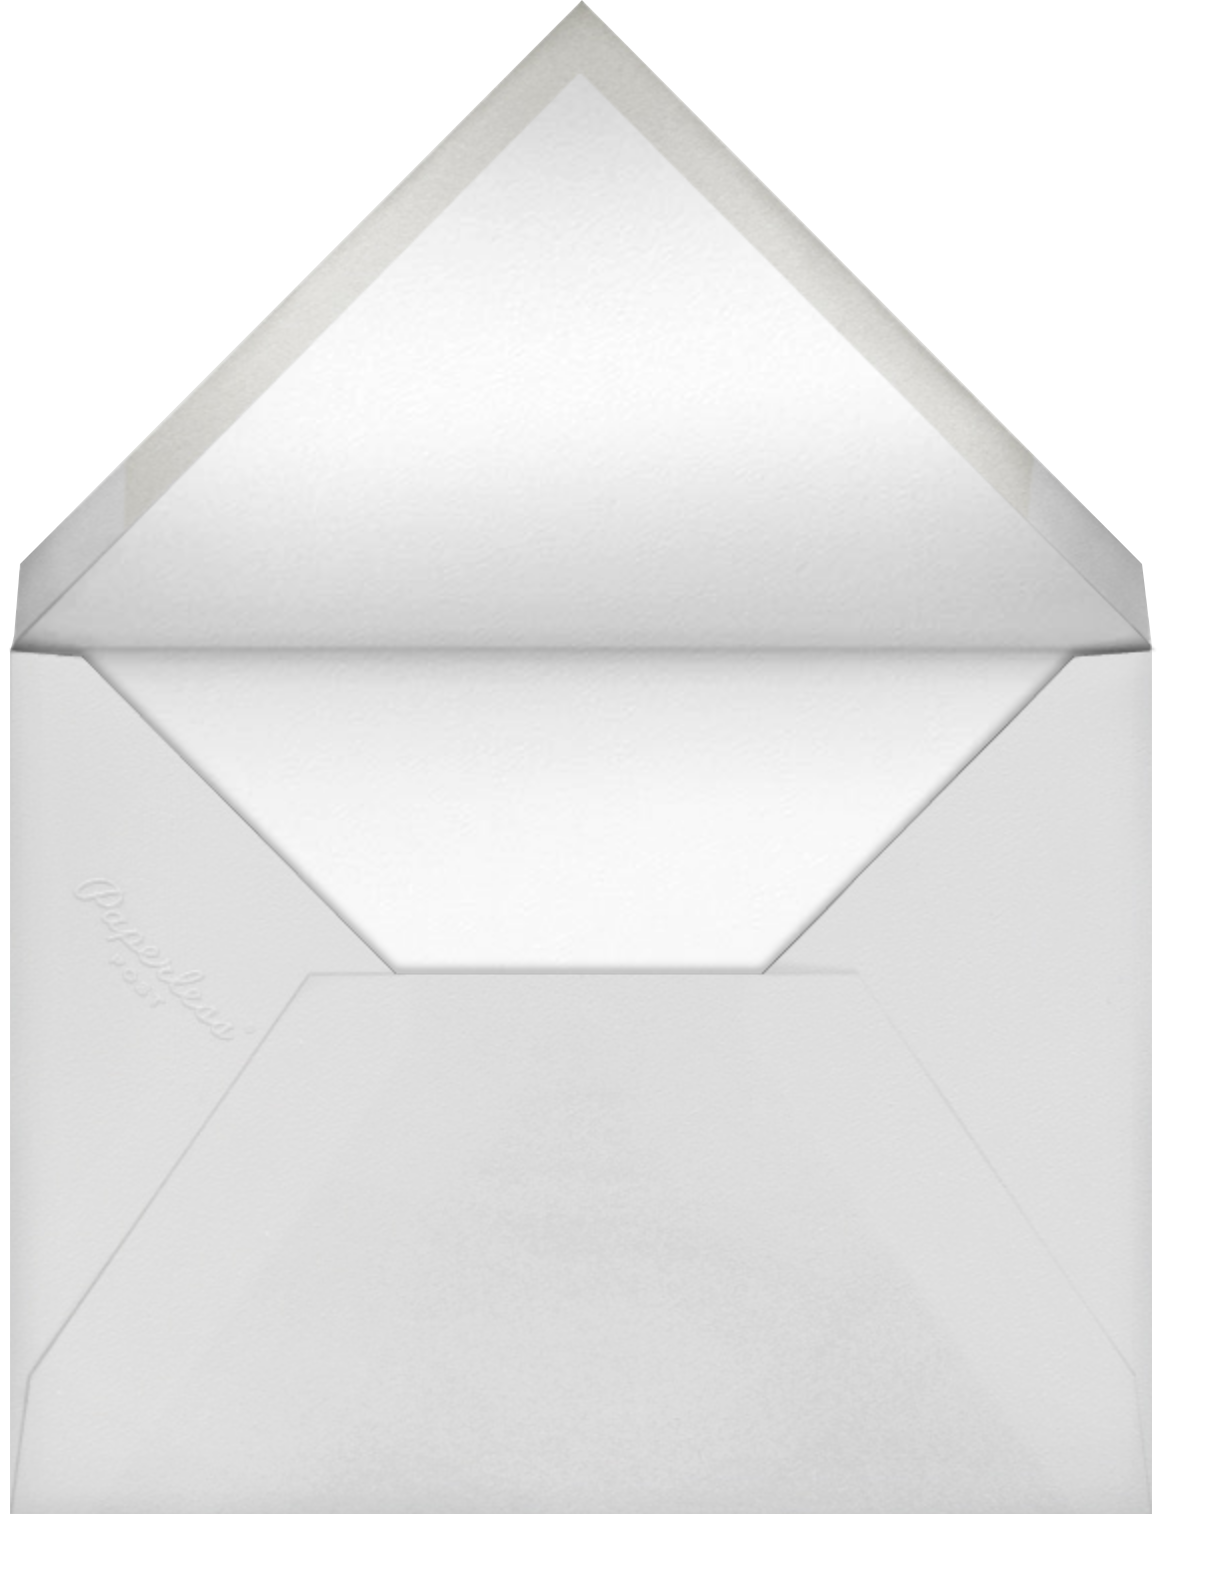 Triangles - Green - Paperless Post - null - envelope back